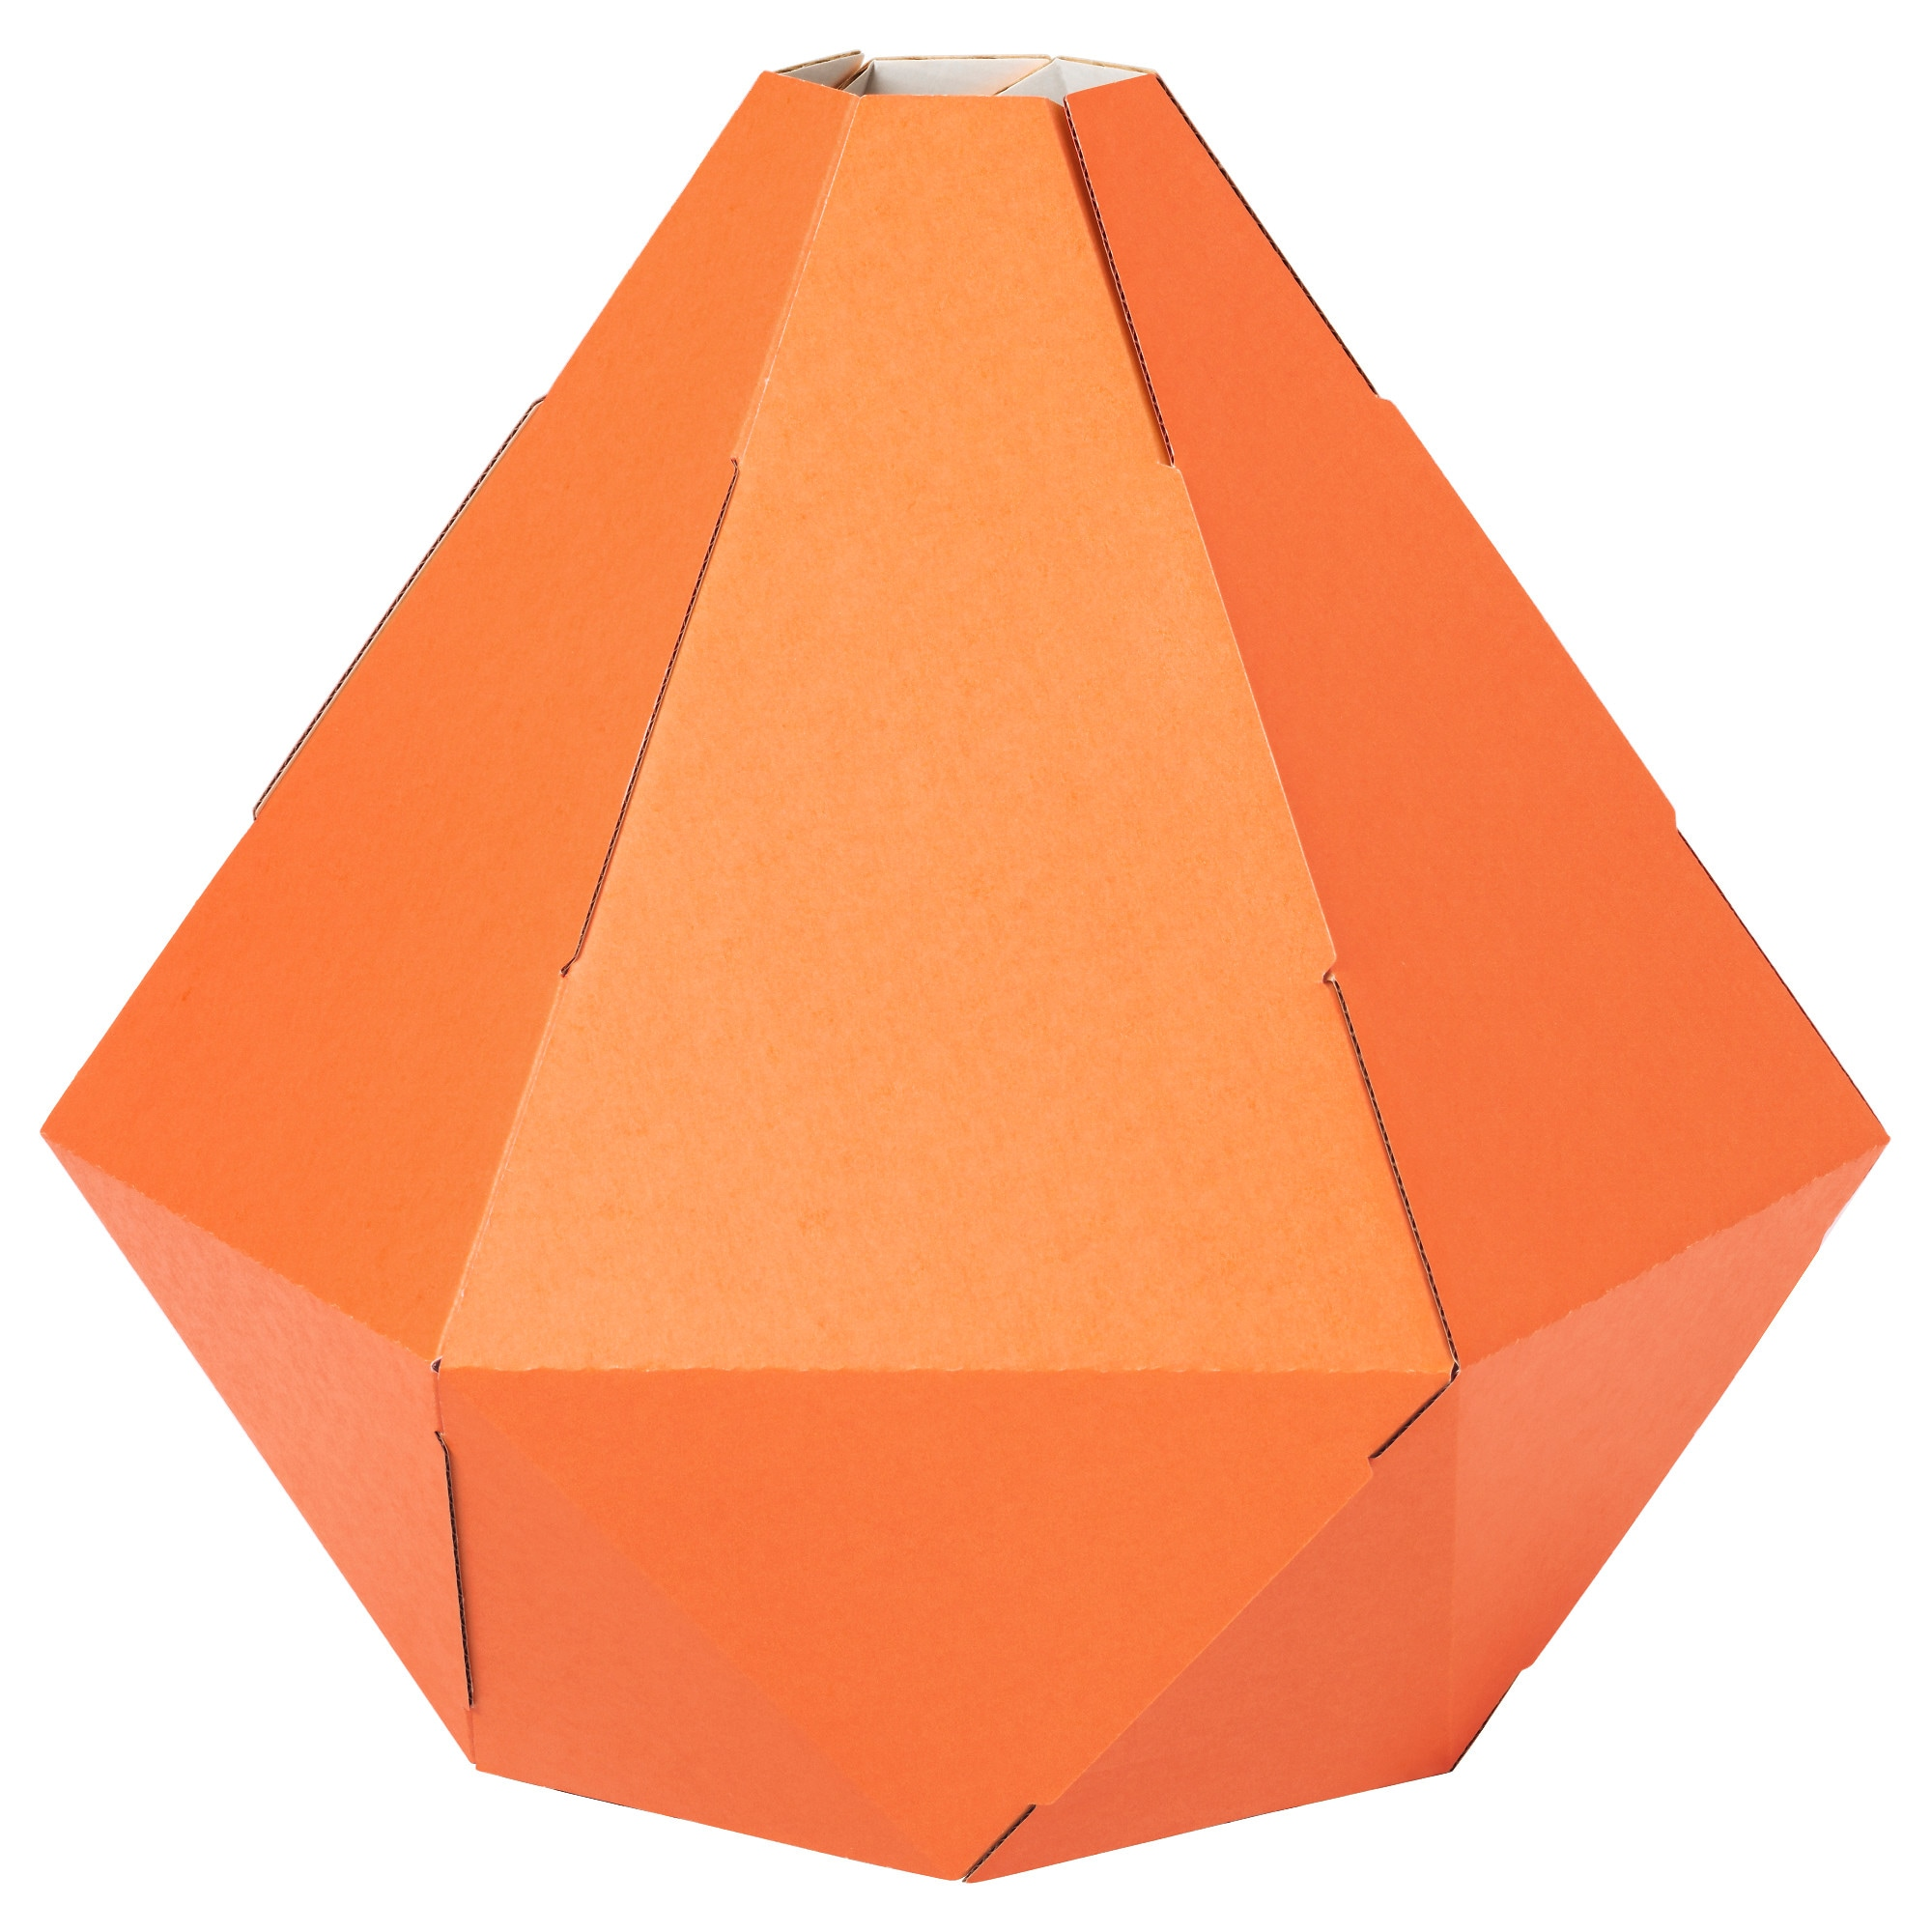 Lamp Shades - IKEA:JOXTORP pendant lamp shade, orange Height: 13